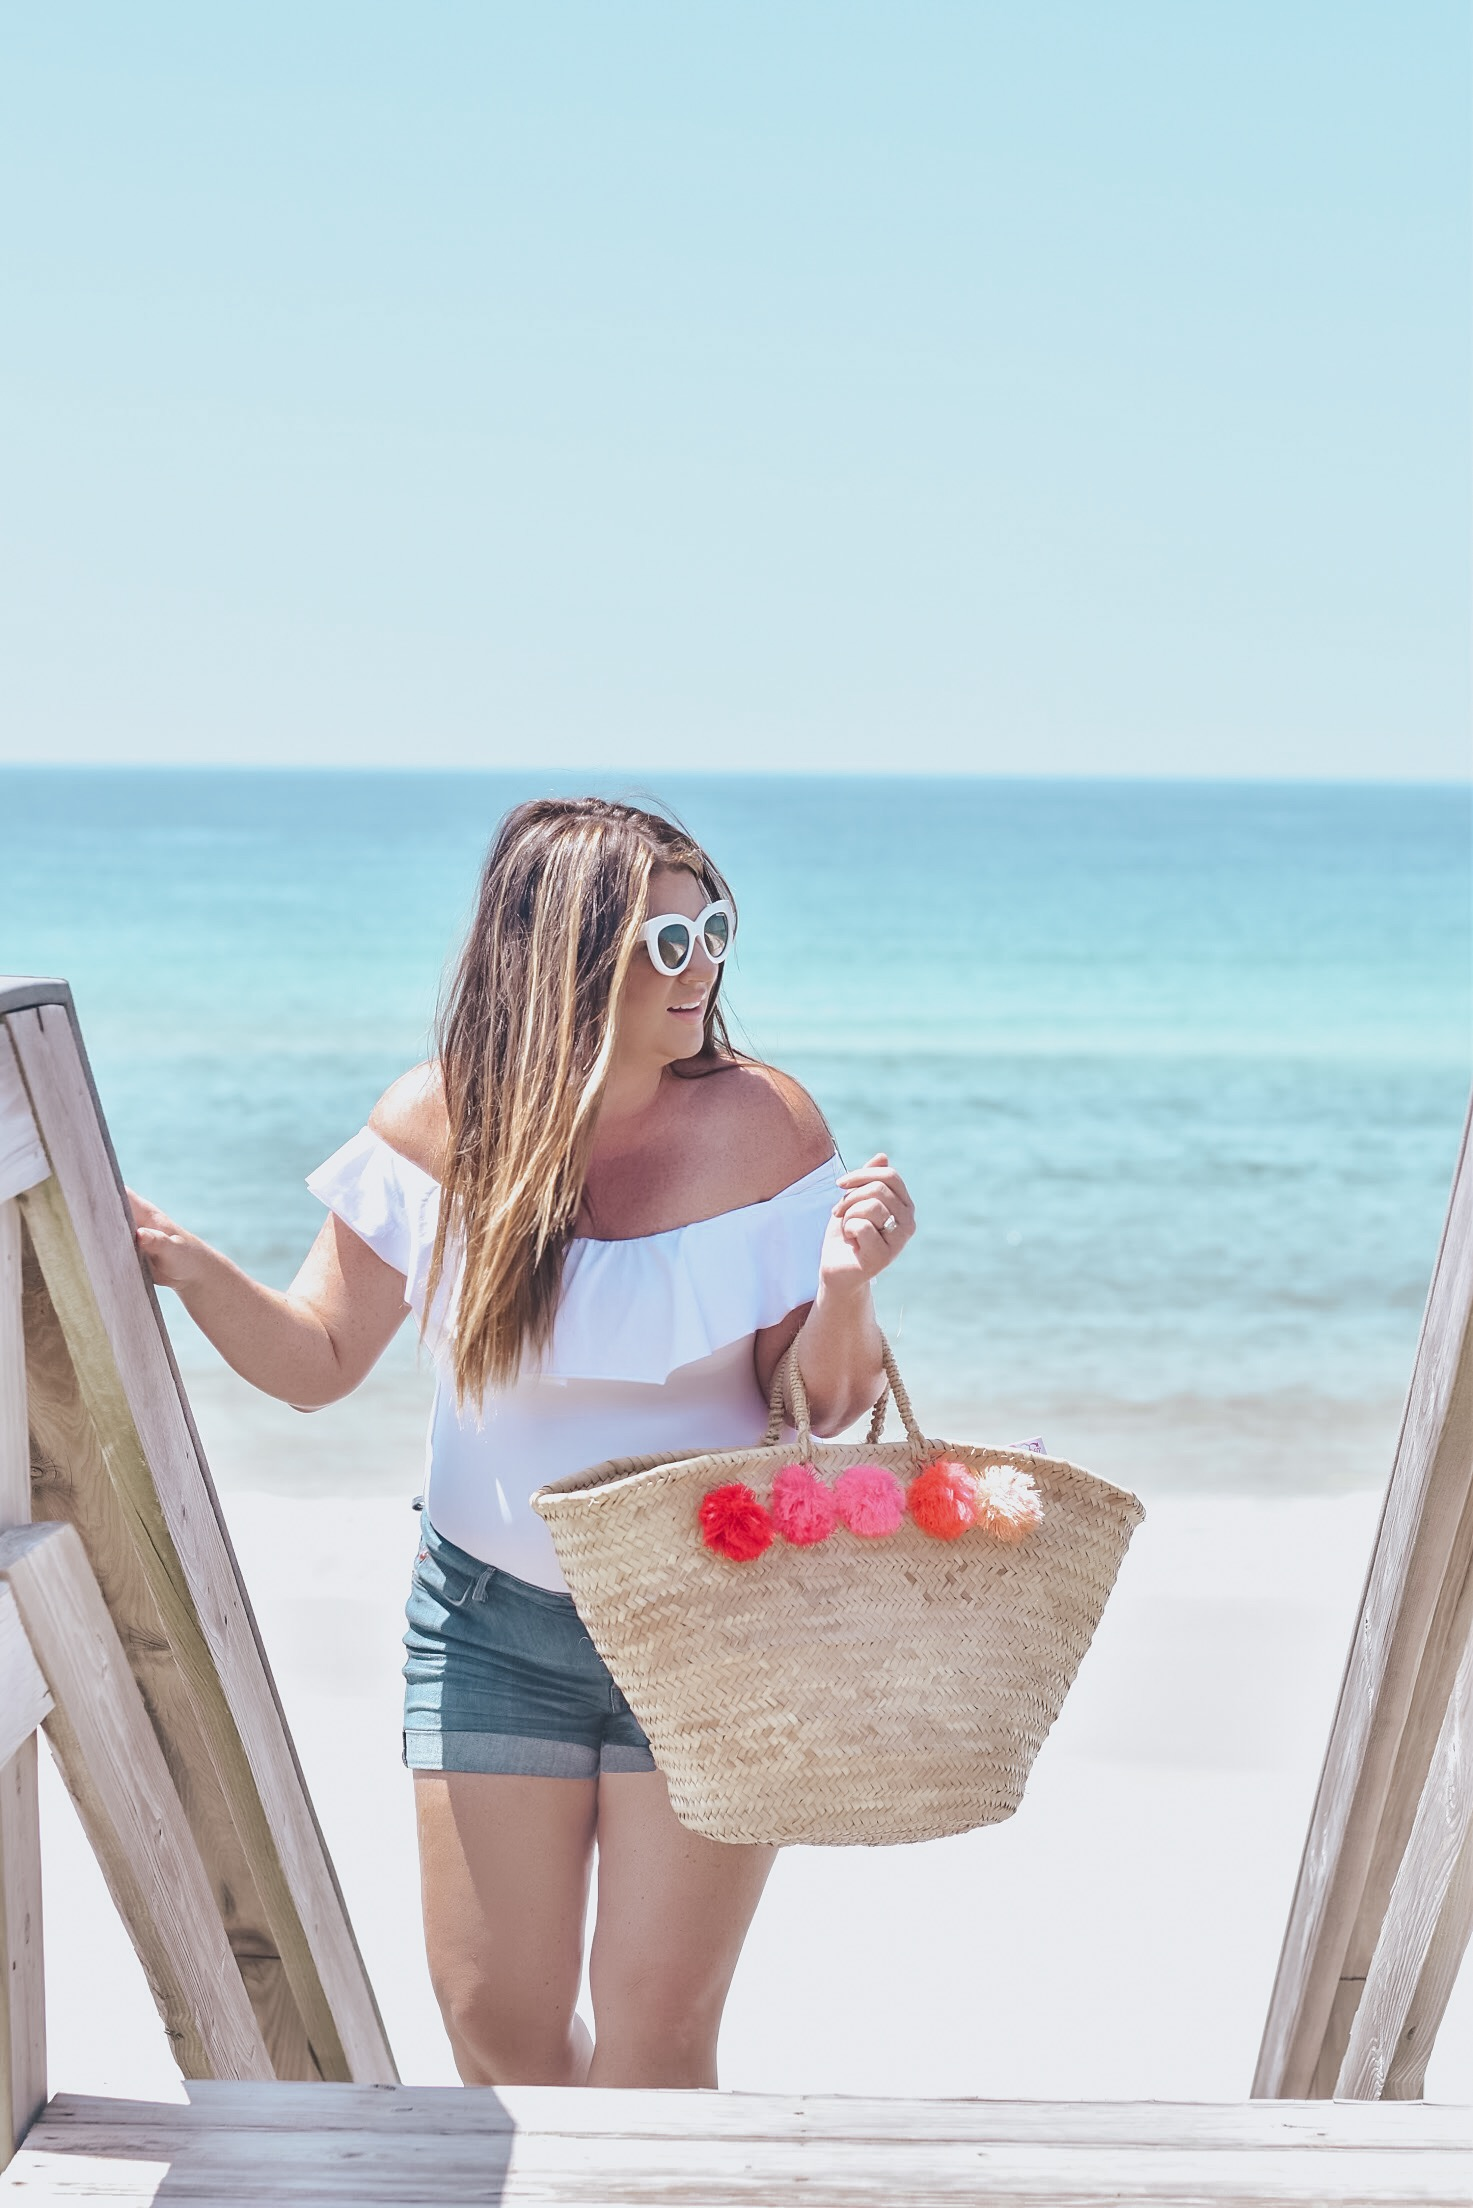 Keeping it Simple and Sunny with Playtex